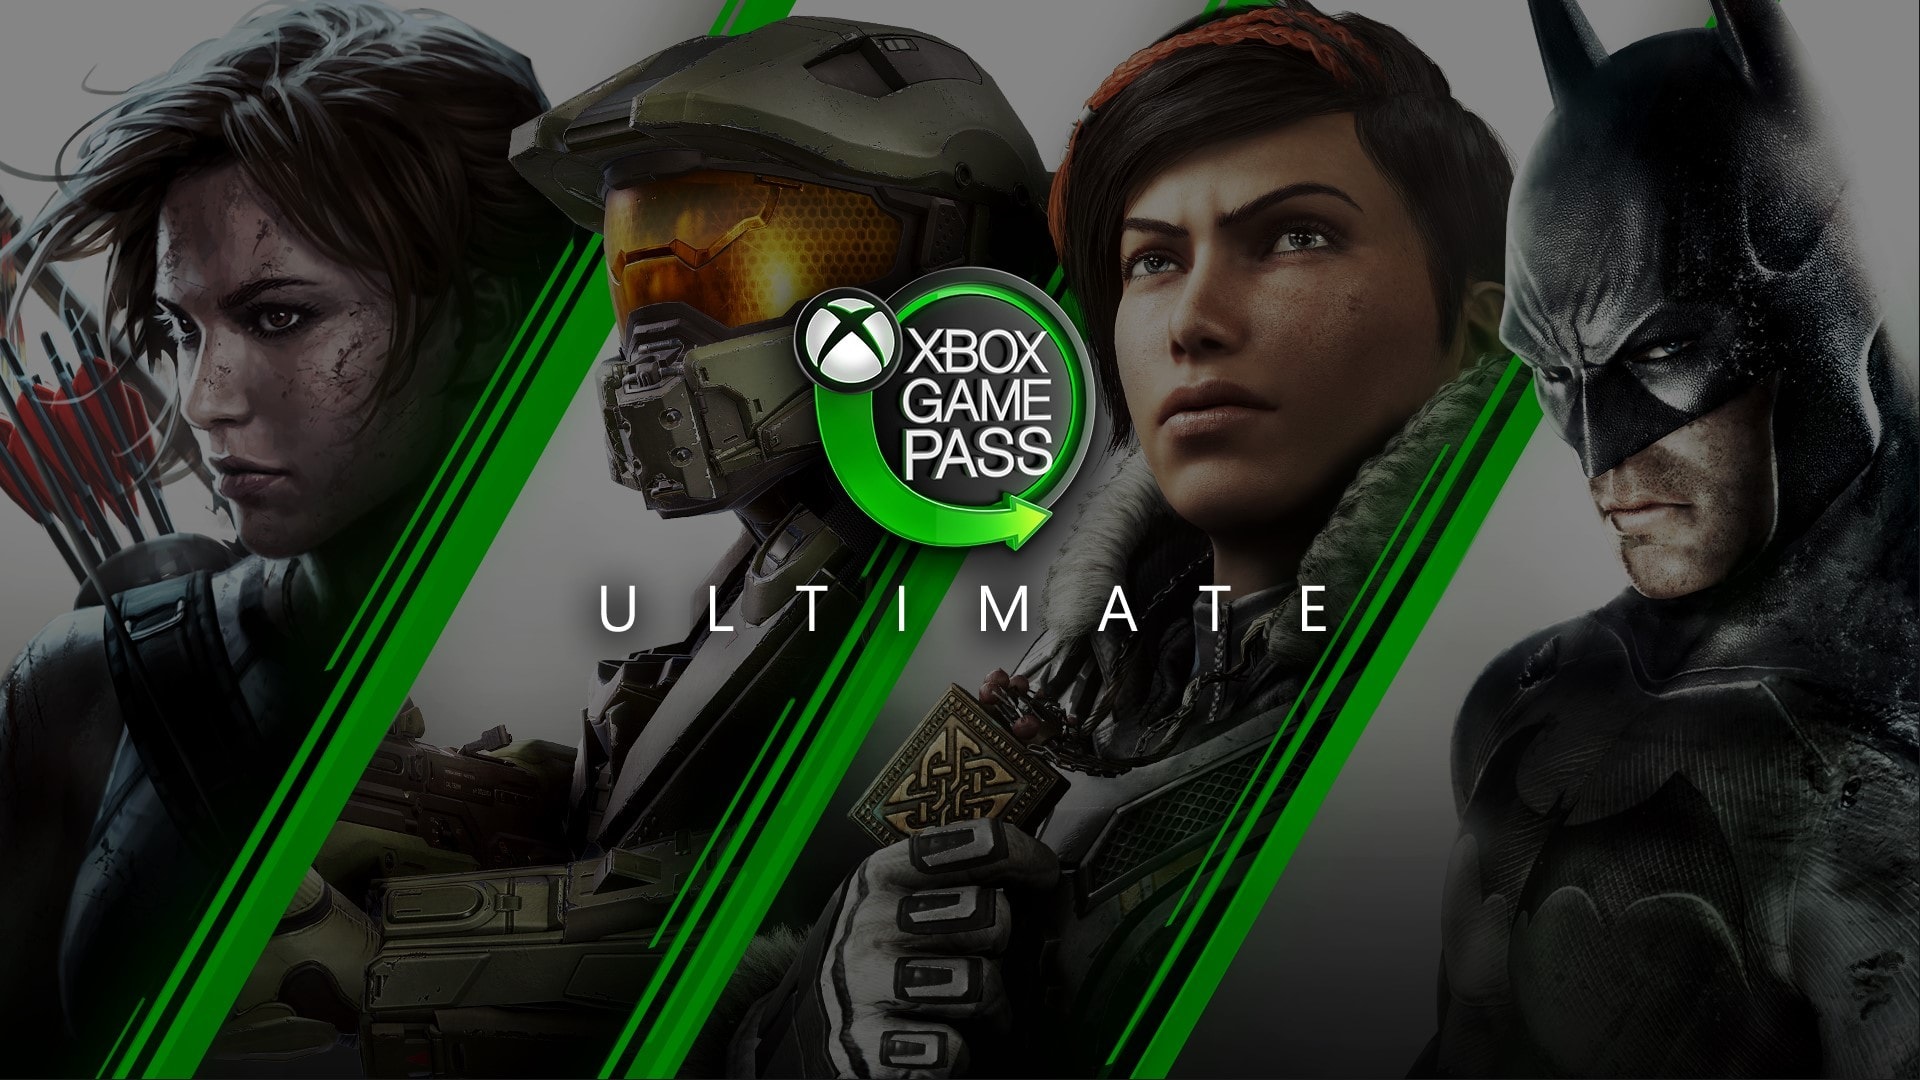 Get 3 years of Xbox Game Pass Ultimate for only $1